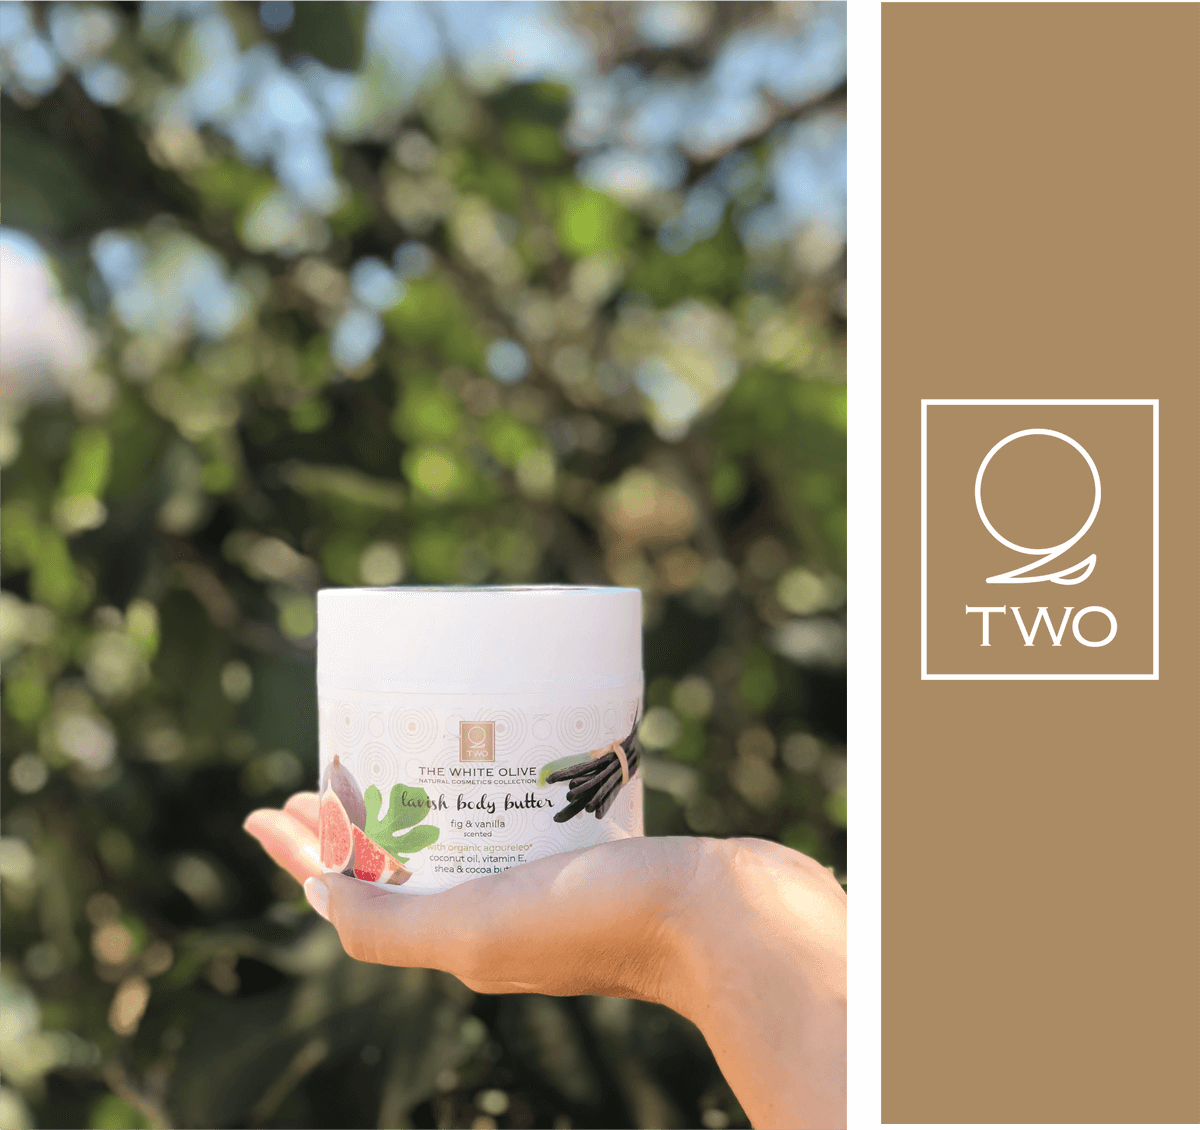 About The White Olive